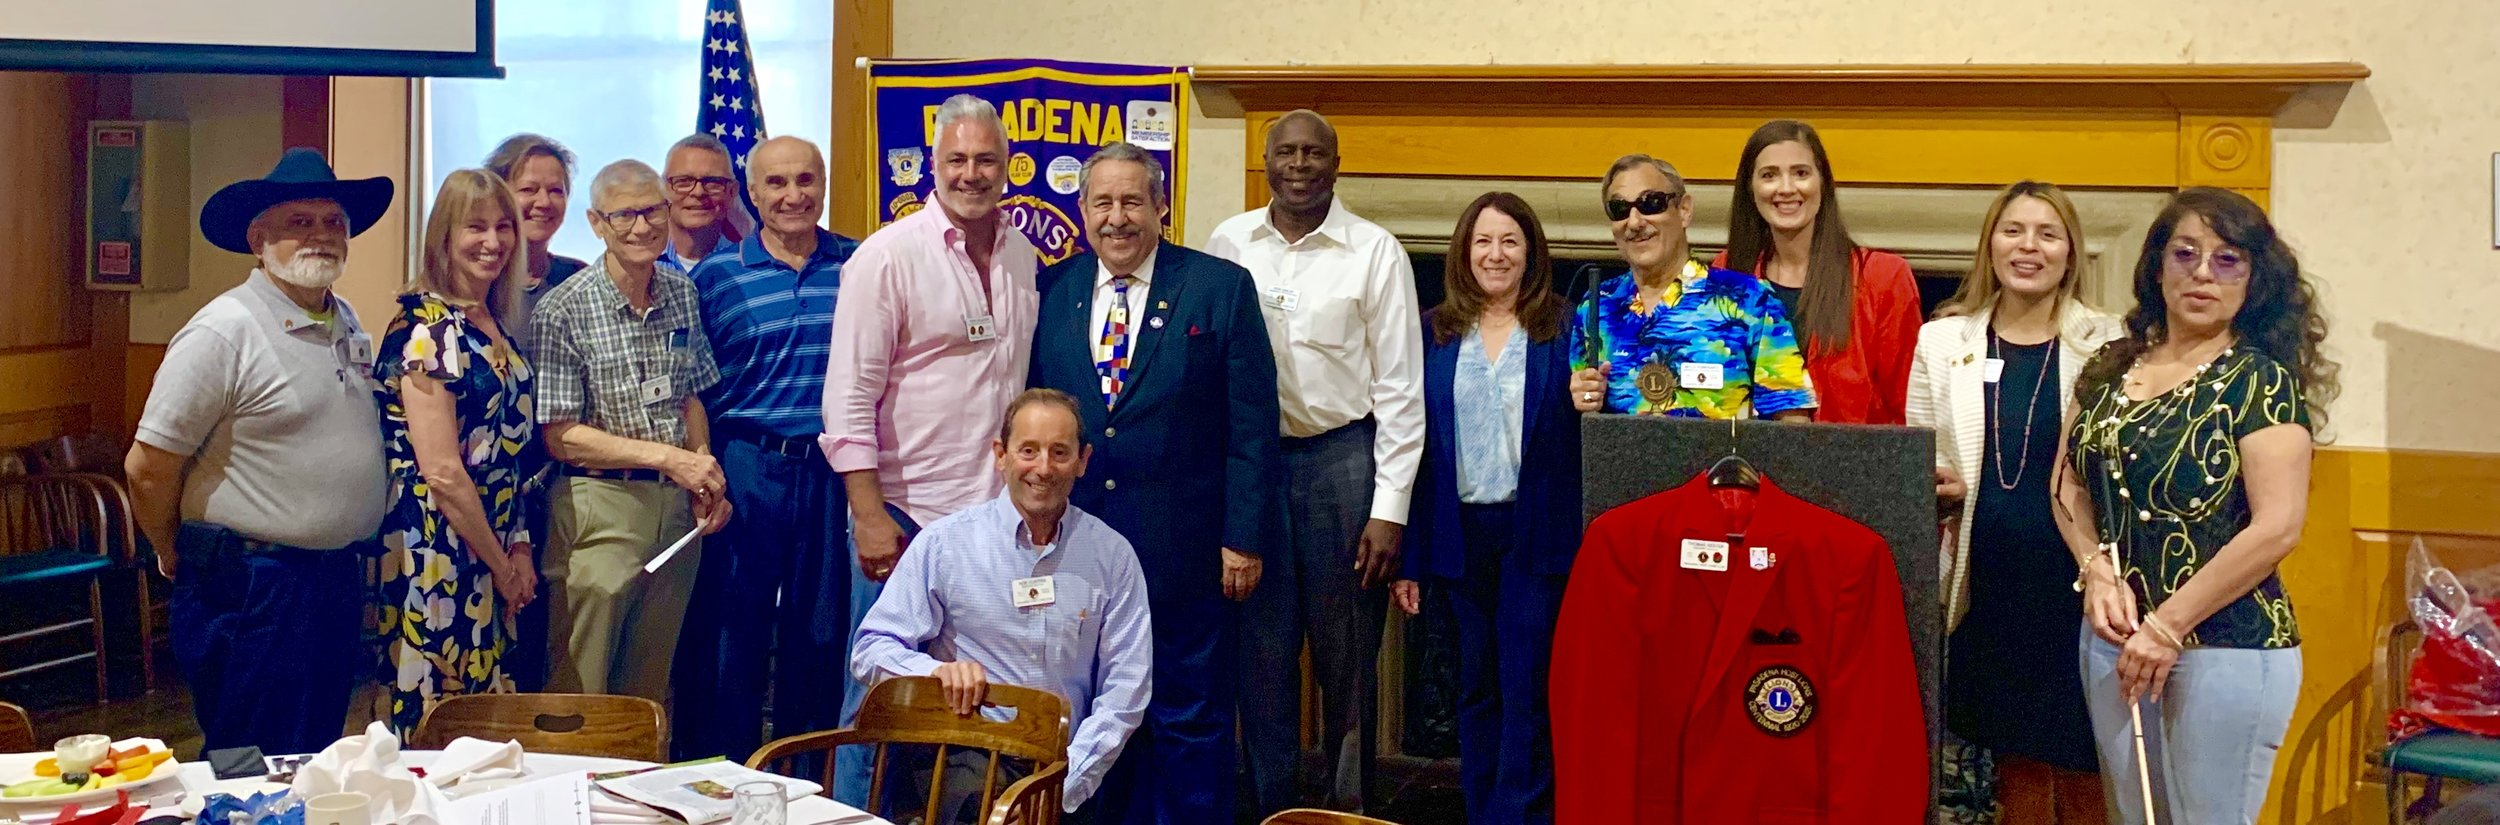 The Pasadena Police Foundation was recently awarded a grant from the Pasadena Host Lions Club Memorial Trust to help support the Kids Safety Academy. PPF board member Gilbert Mares accepted the award on our behalf at the August 6, 2019 Lions Club meeting in Pasadena.